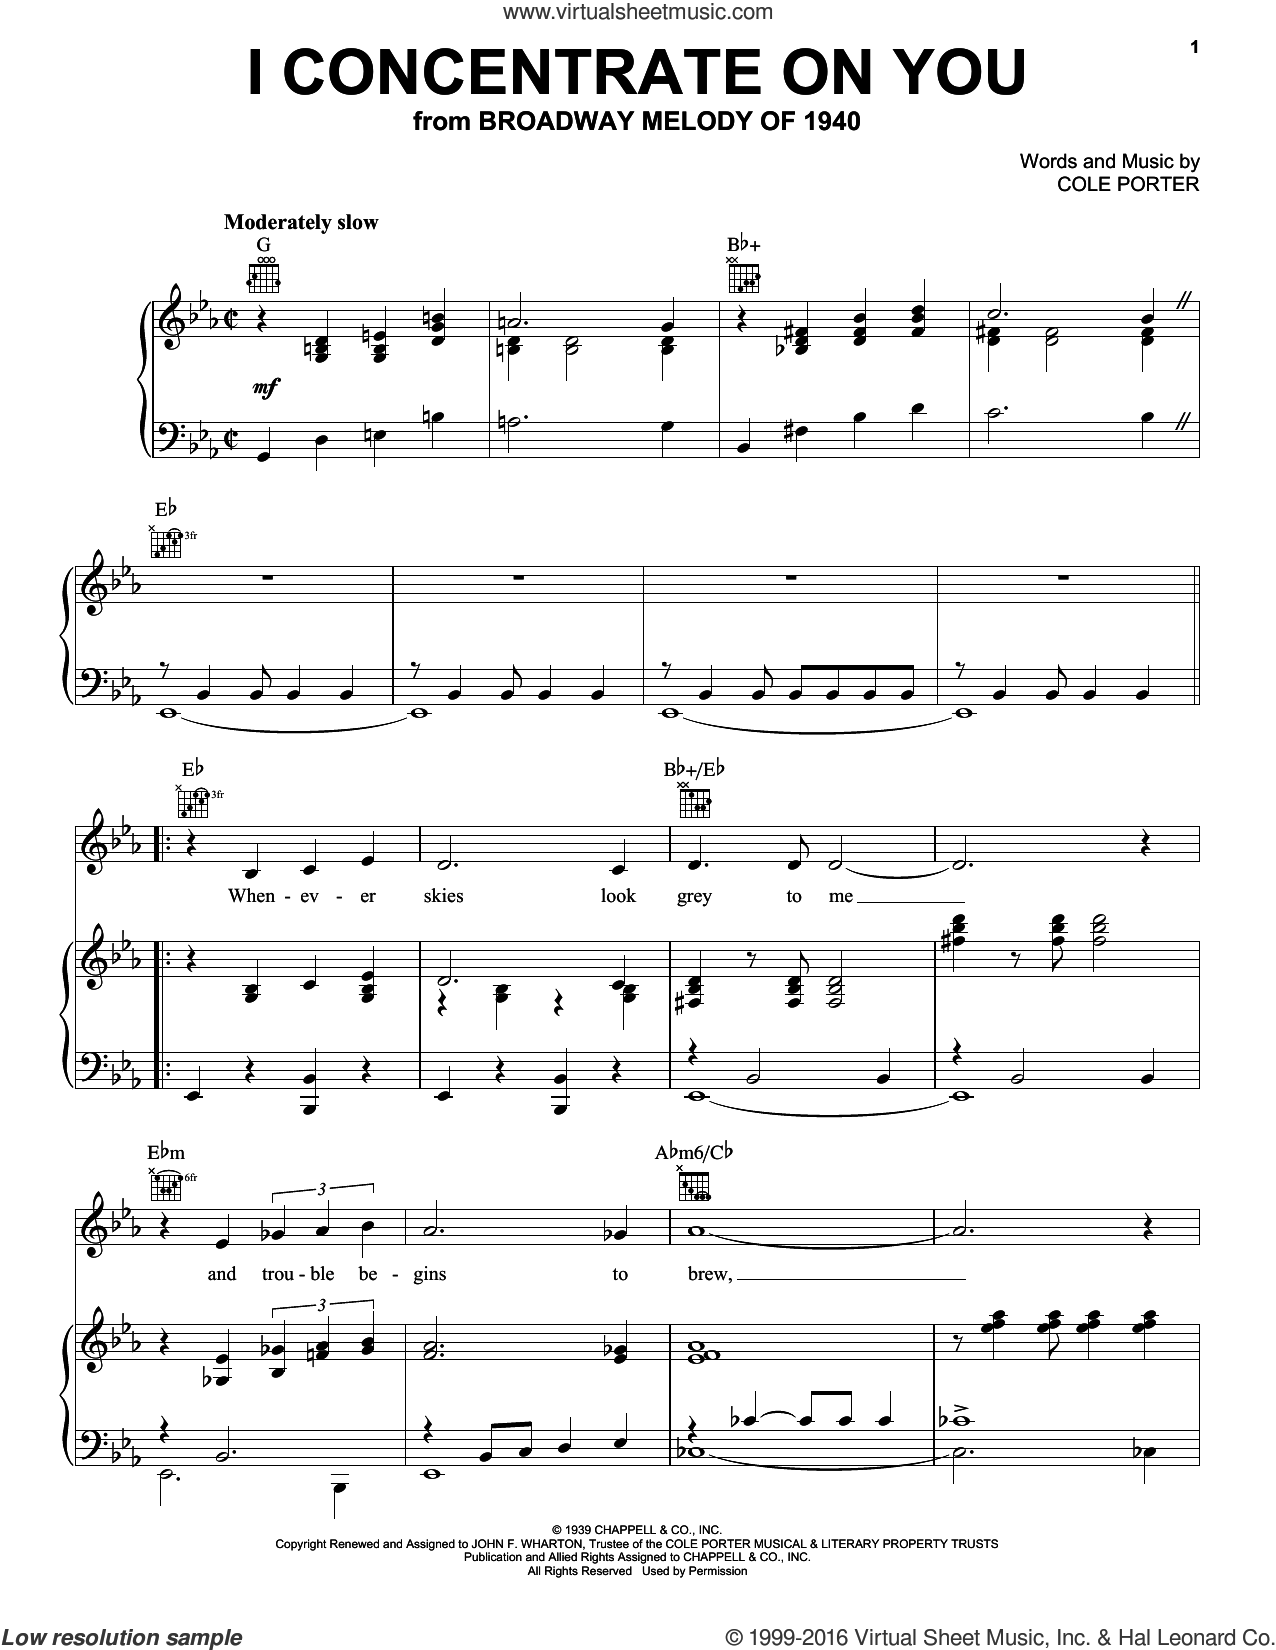 I Concentrate On You sheet music for voice, piano or guitar by Frank Sinatra, Ella Fitzgerald, Judy Garland and Cole Porter, intermediate skill level